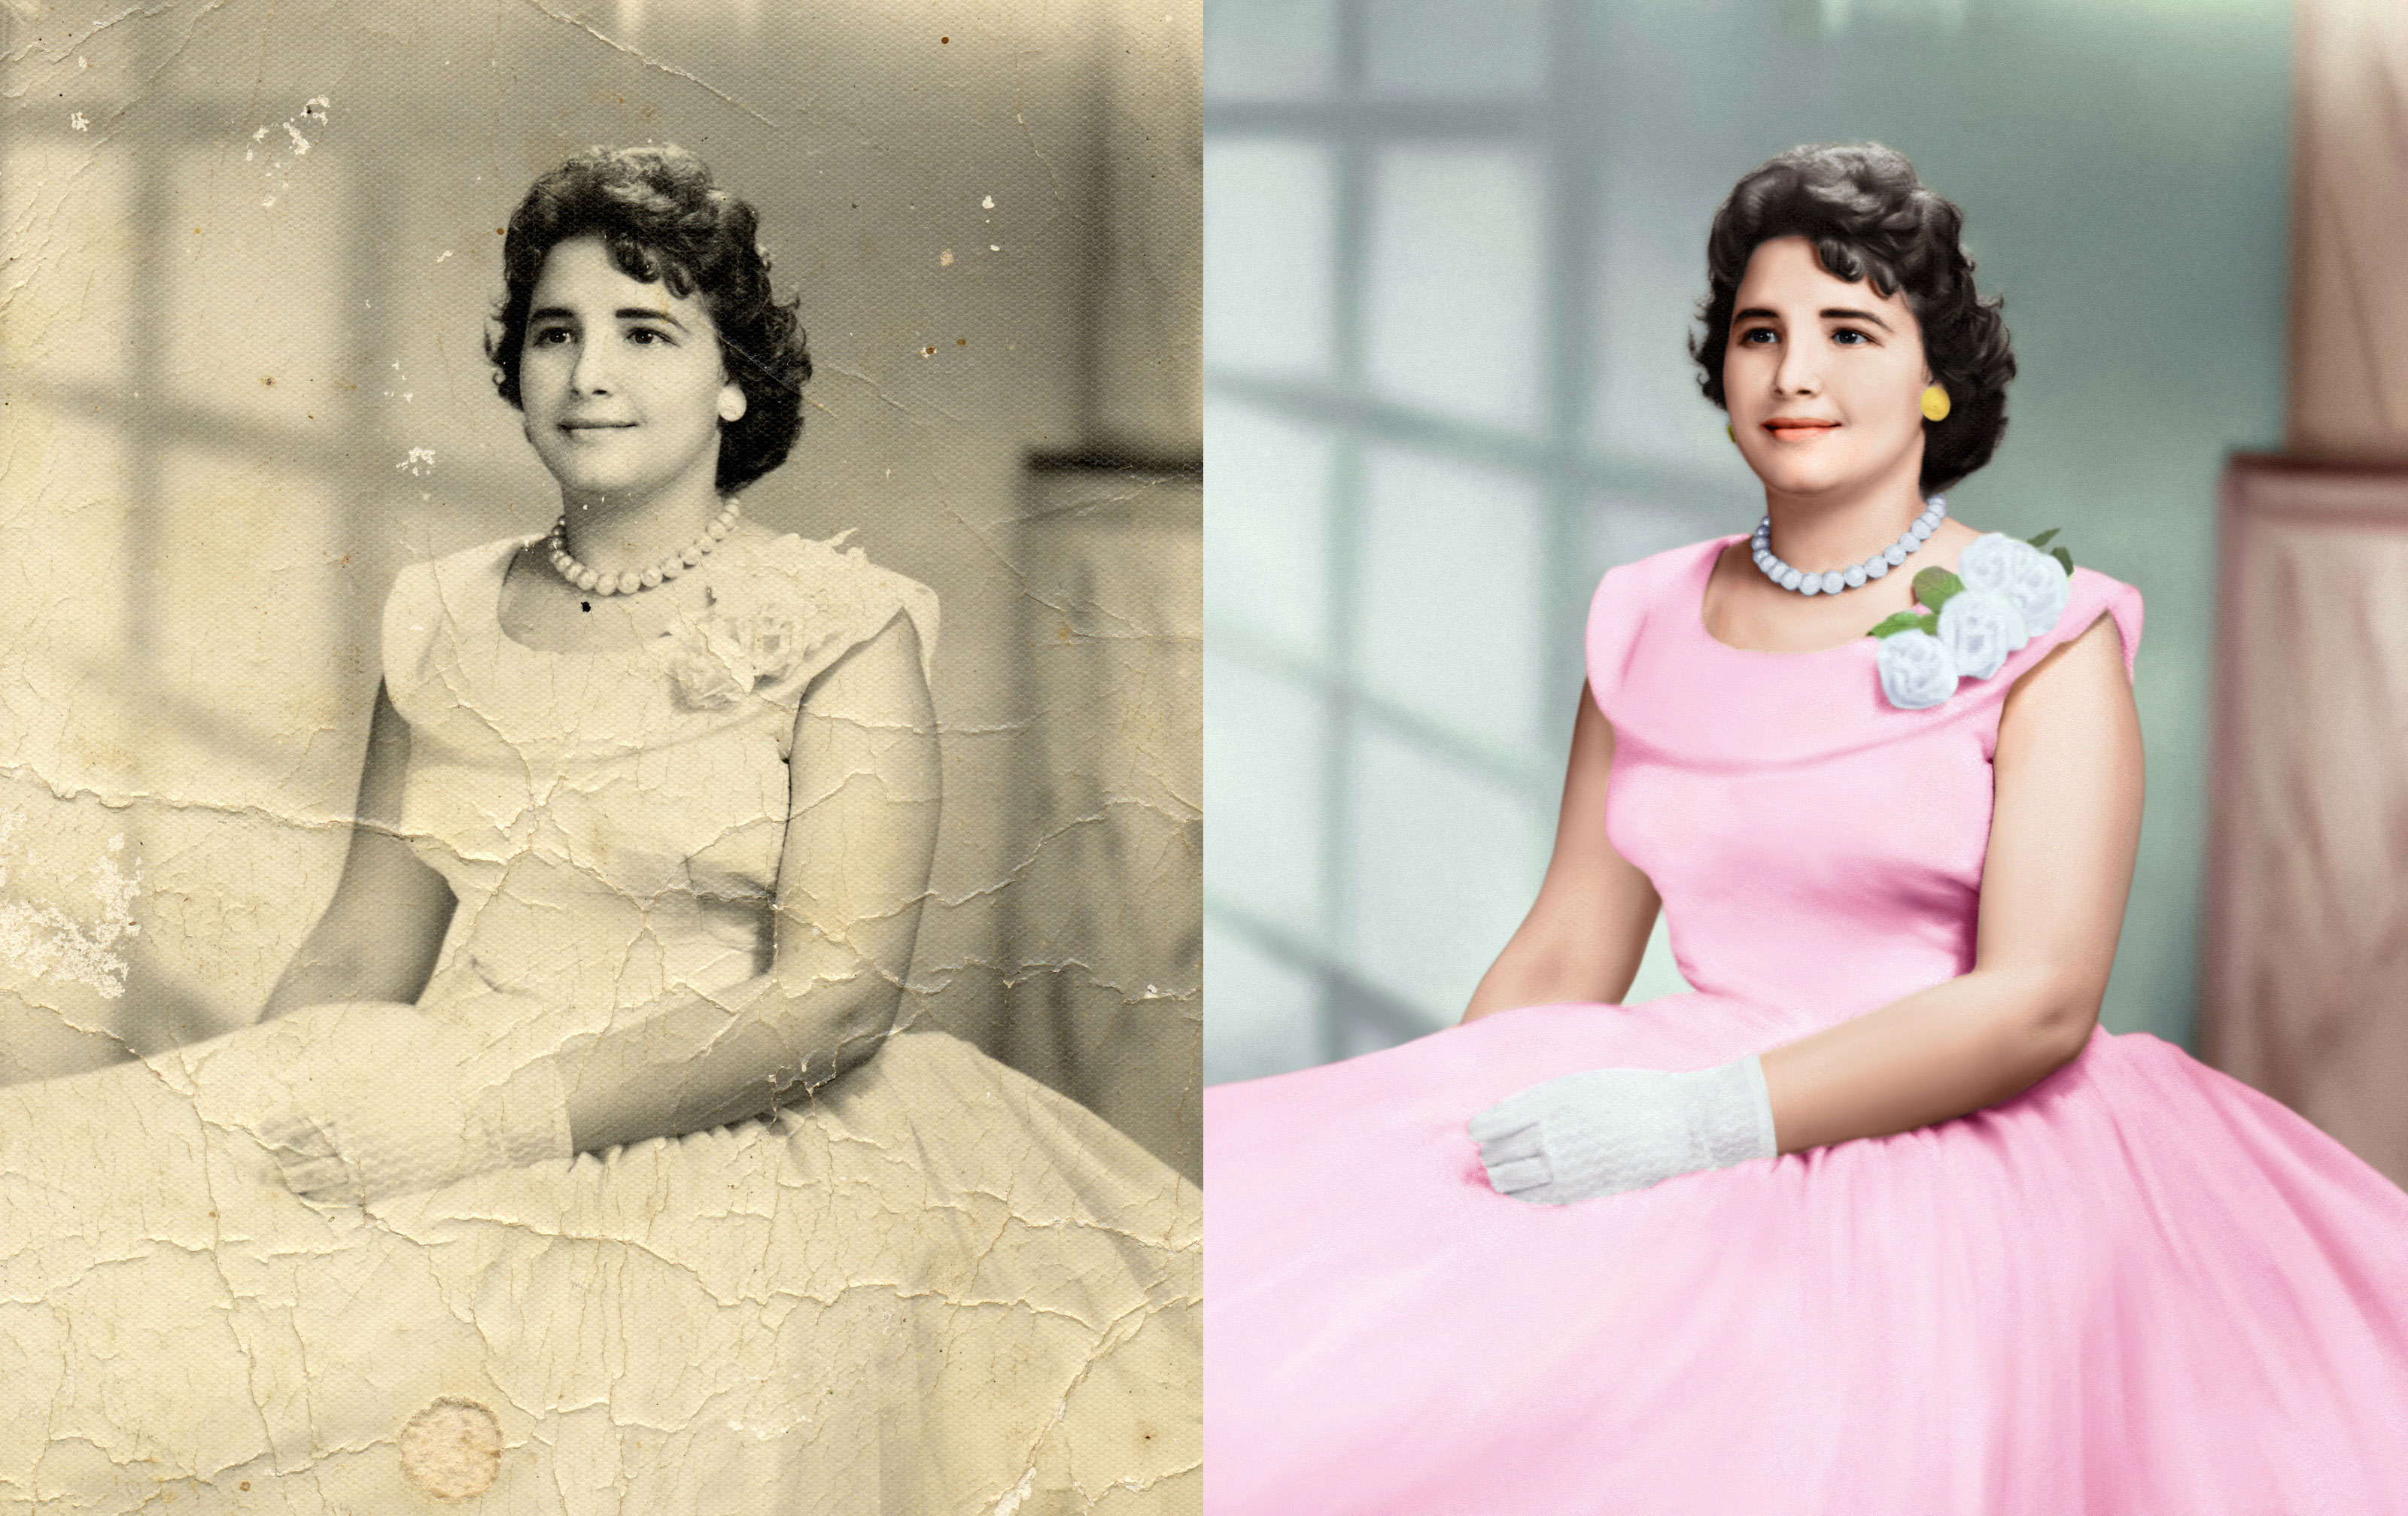 Gear you need to start retouch old photographs